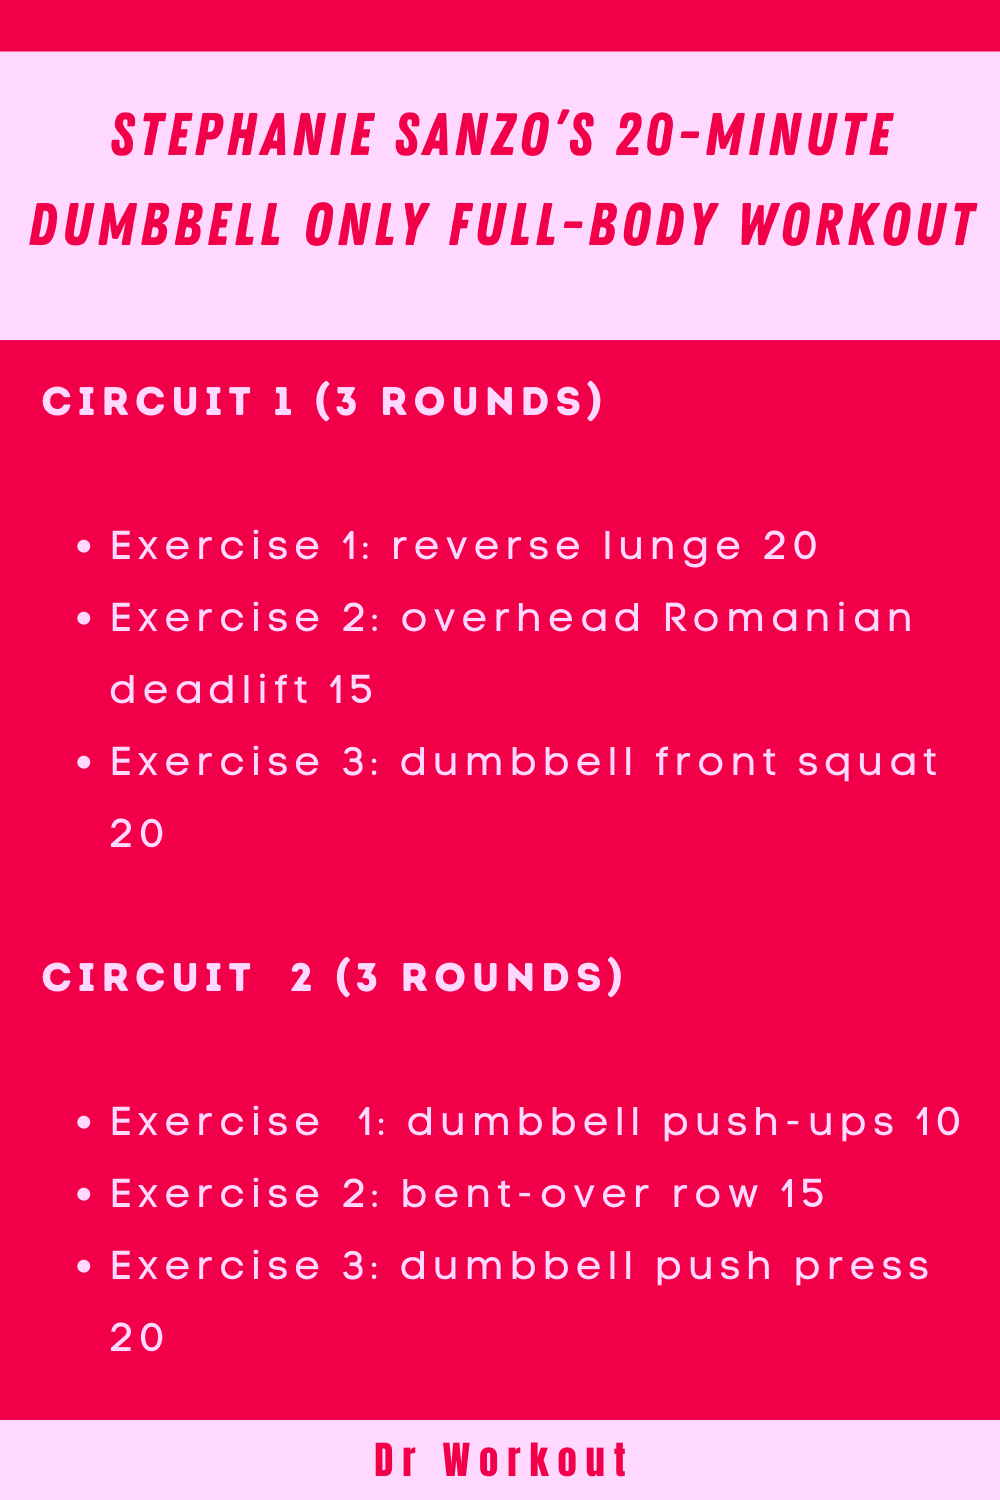 Stephanie Sanzo Dumbbell Only Full-Body Workout